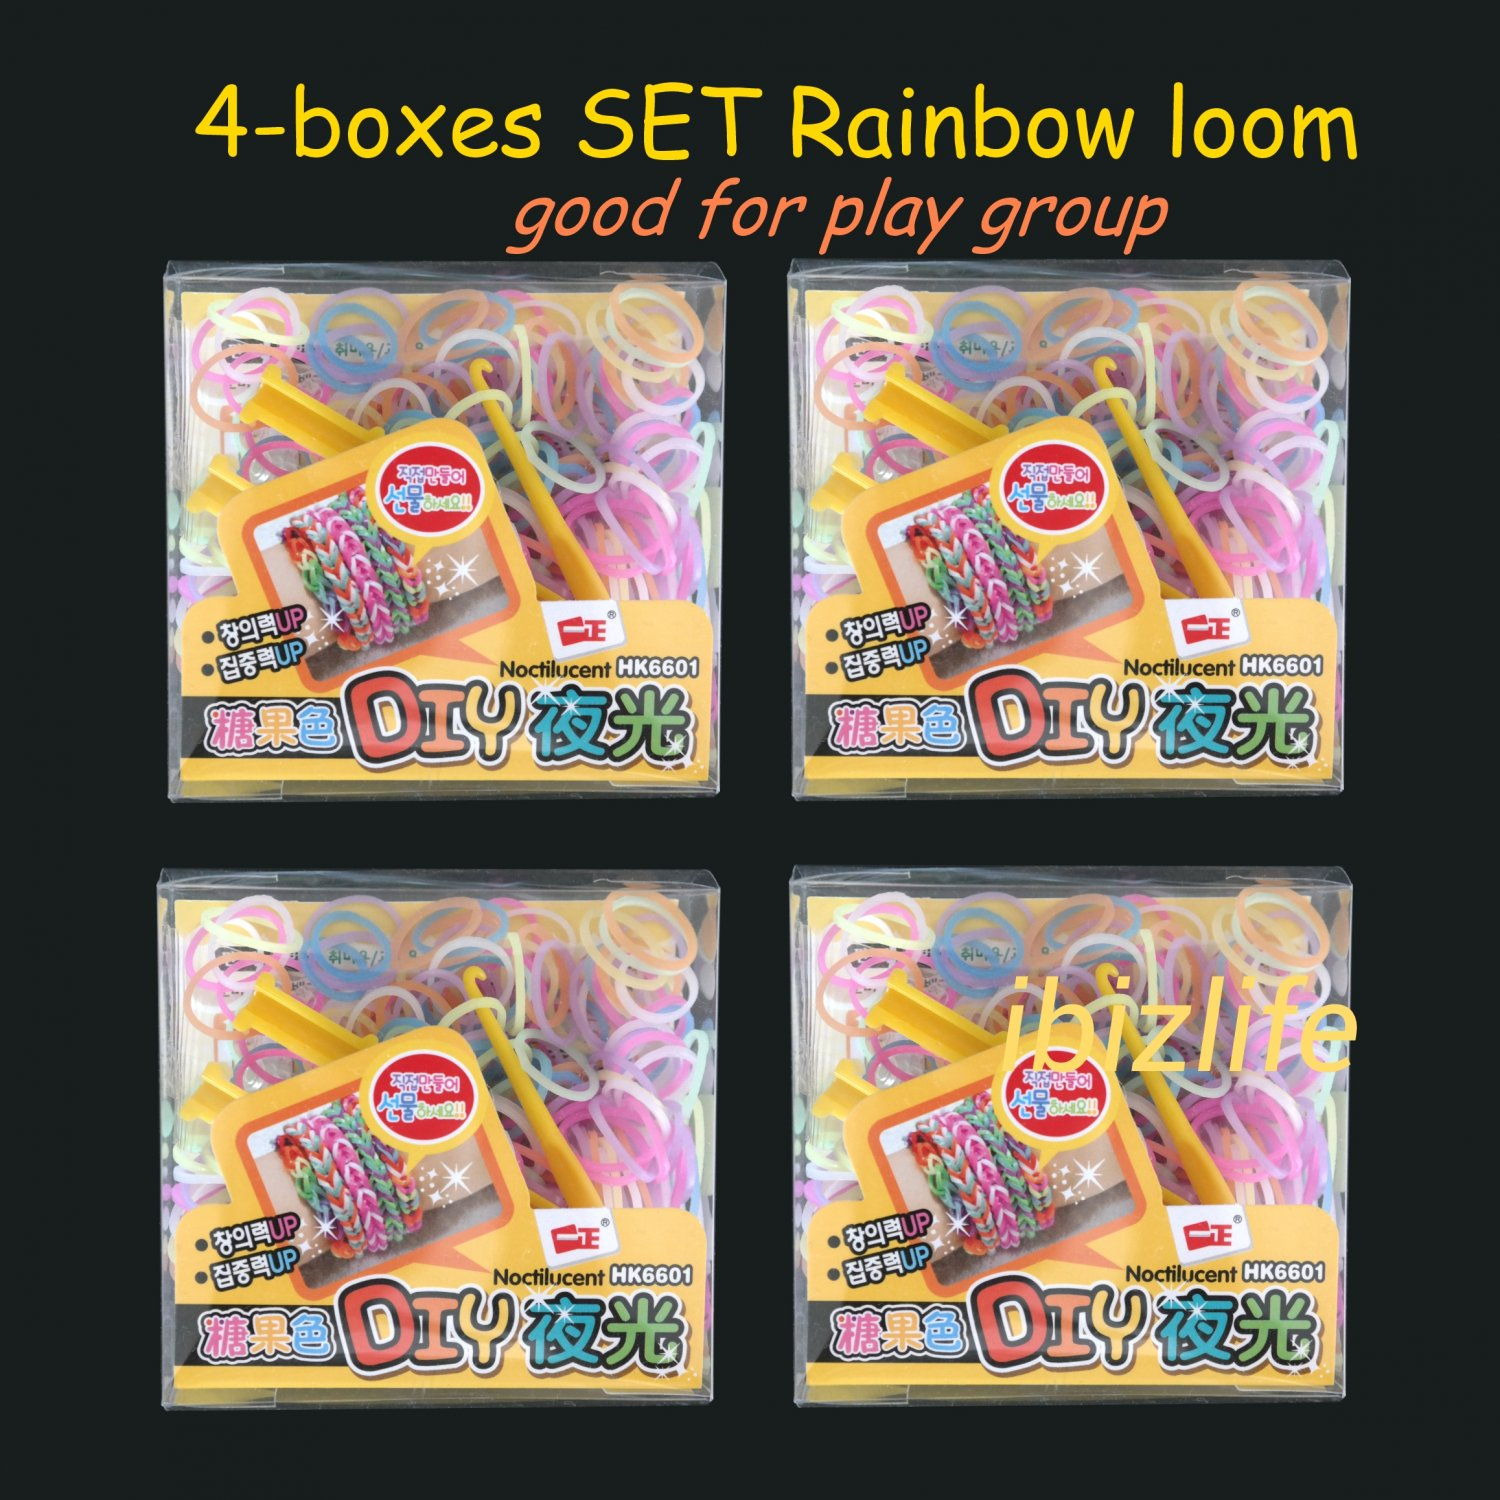 RAINBOW COLOR LOOM RUBBER BAND Kits (4-boxes set) Noctilucent (Grow in the dark) bands (RL09)